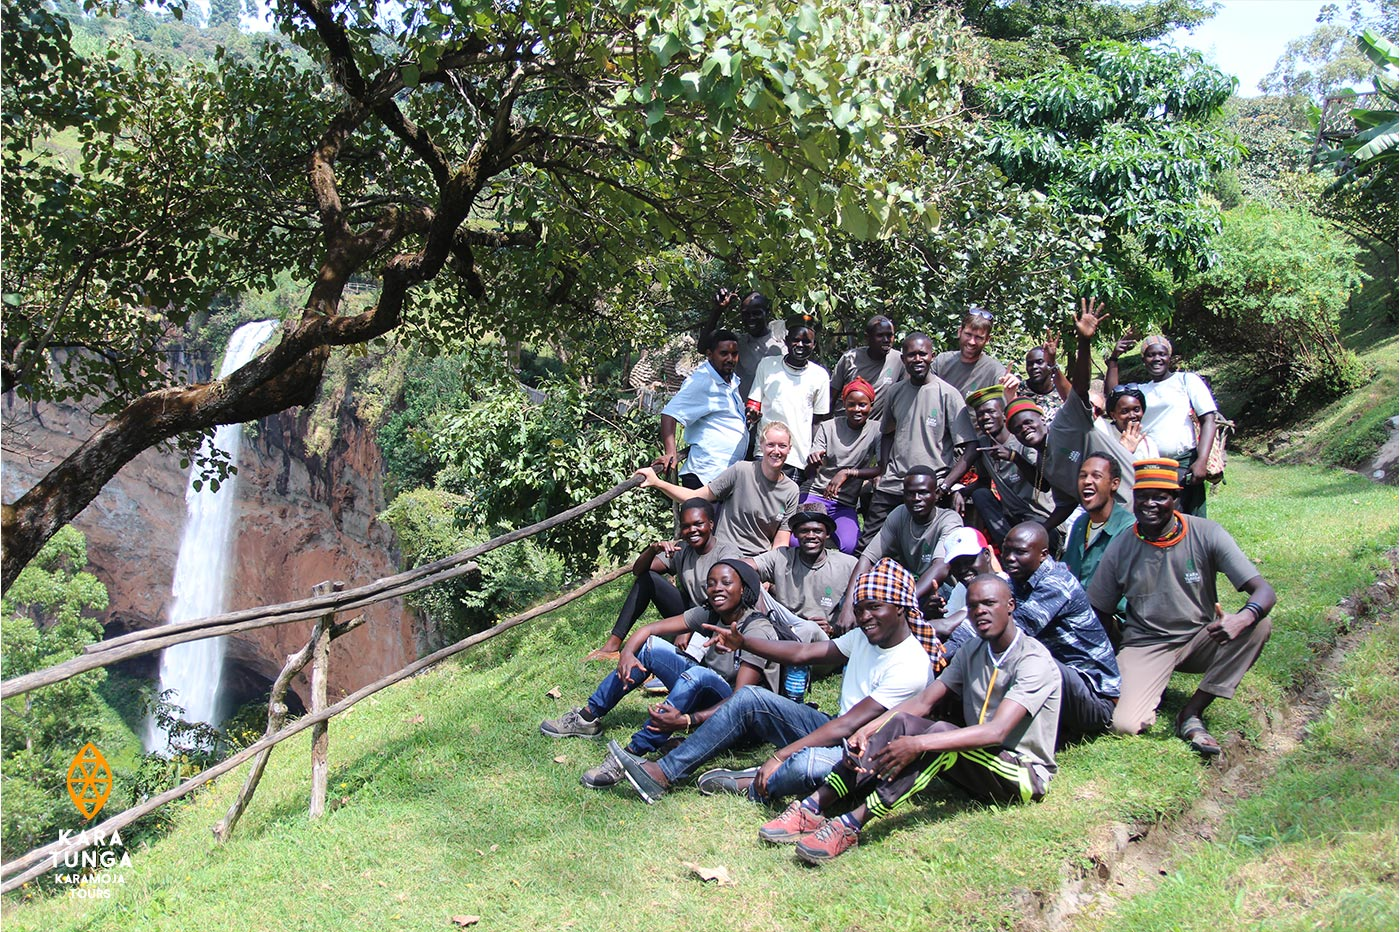 kara-tunga-undp-field-trip-karamoja-tour-guide-training-6